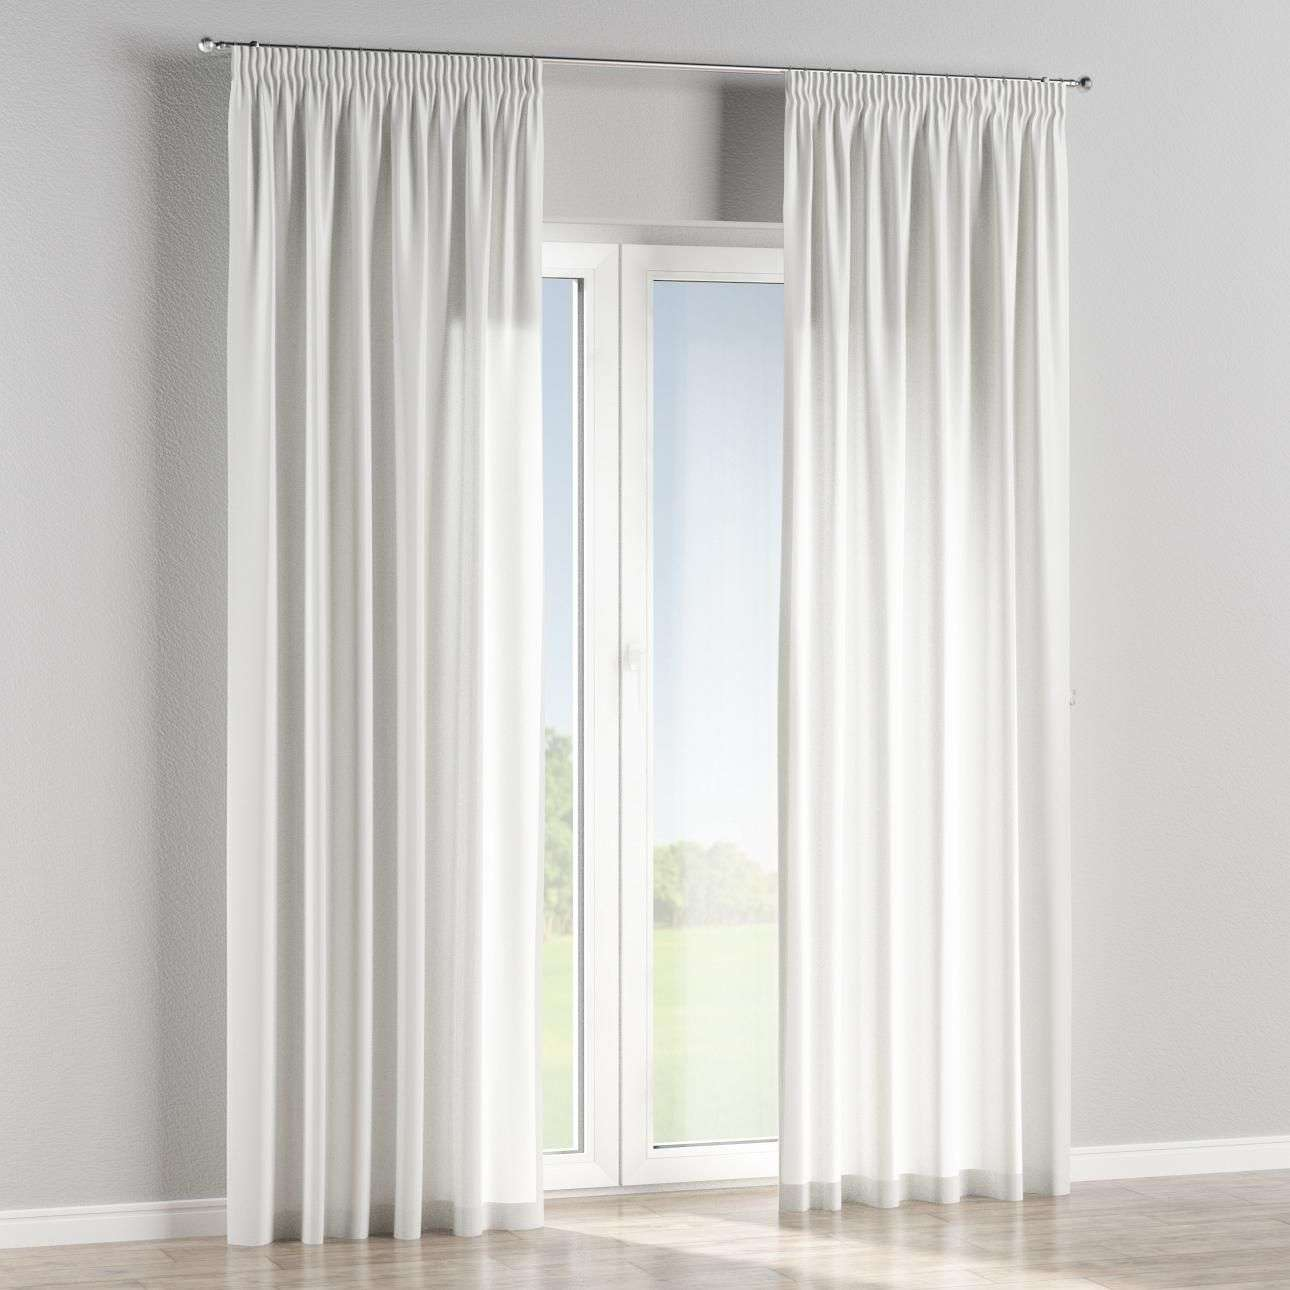 Pencil pleat lined curtains in collection Bristol, fabric: 126-15